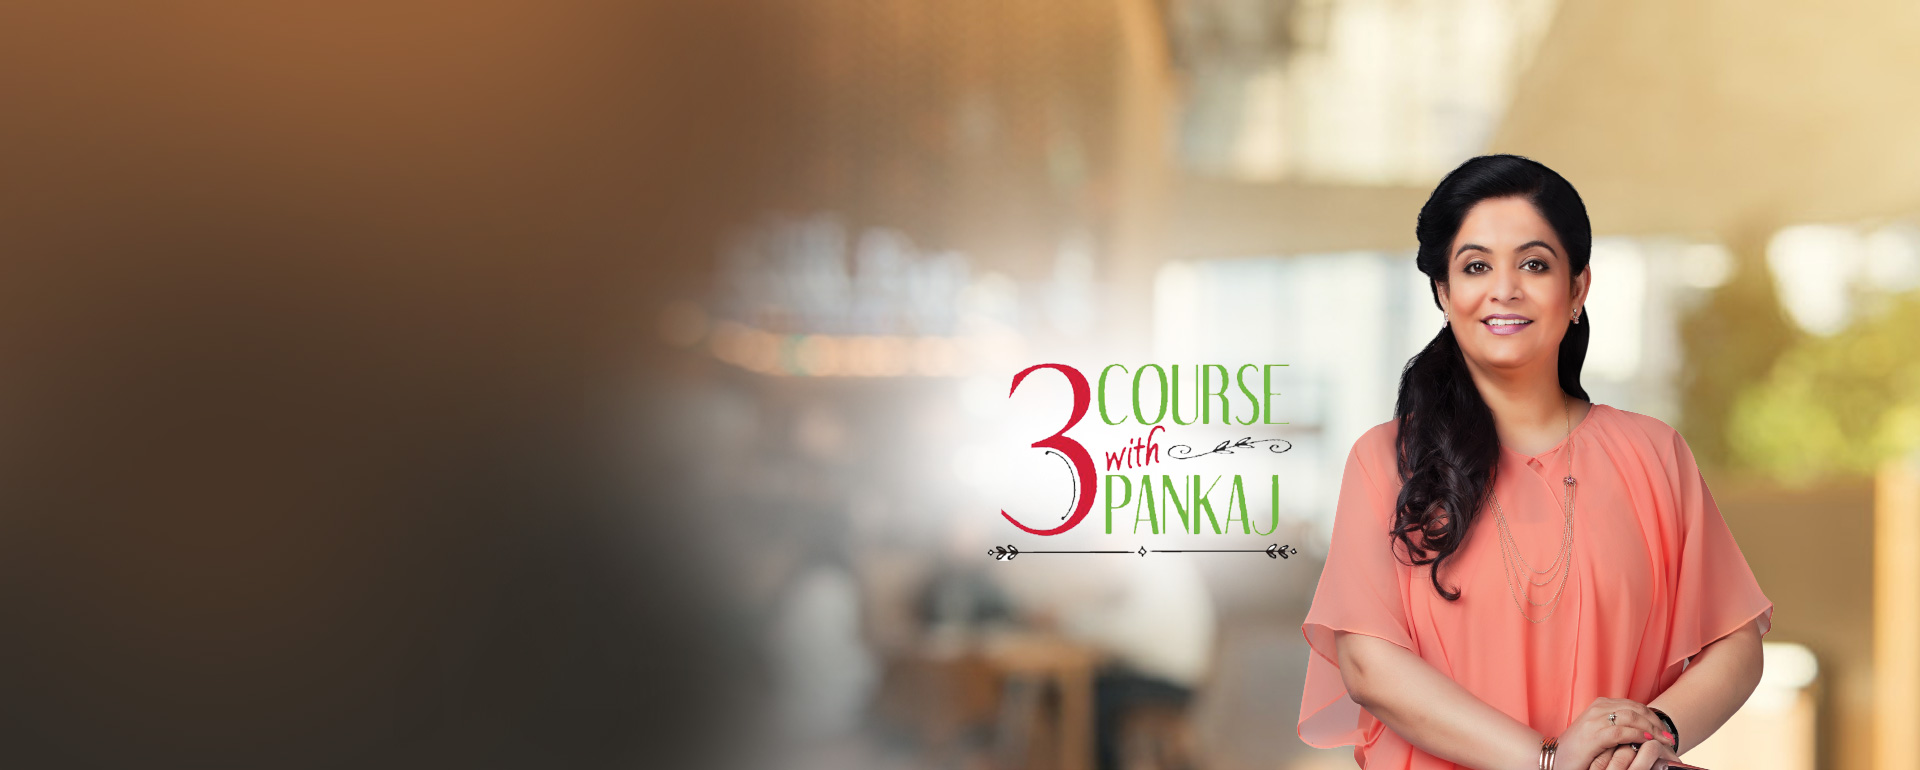 3 COURSE WITH PANKAJ